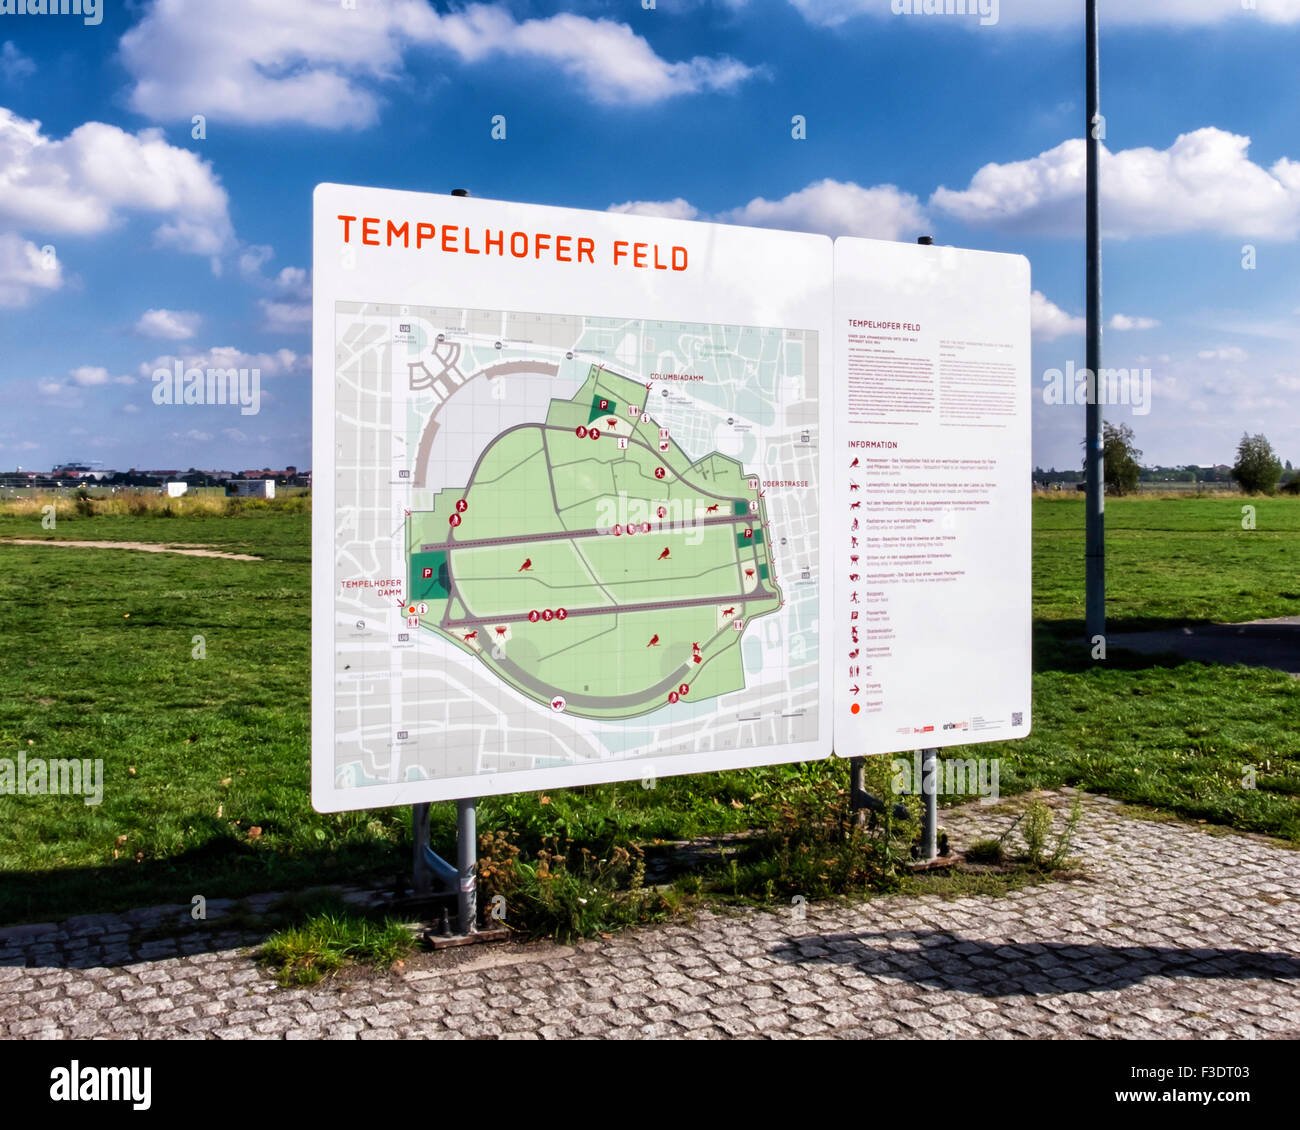 Berlin Tempelhof Airport, Flughafen -  Tempelhofer Feld Map, Old obsolete airfield now used for leisure and recreation - Stock Image